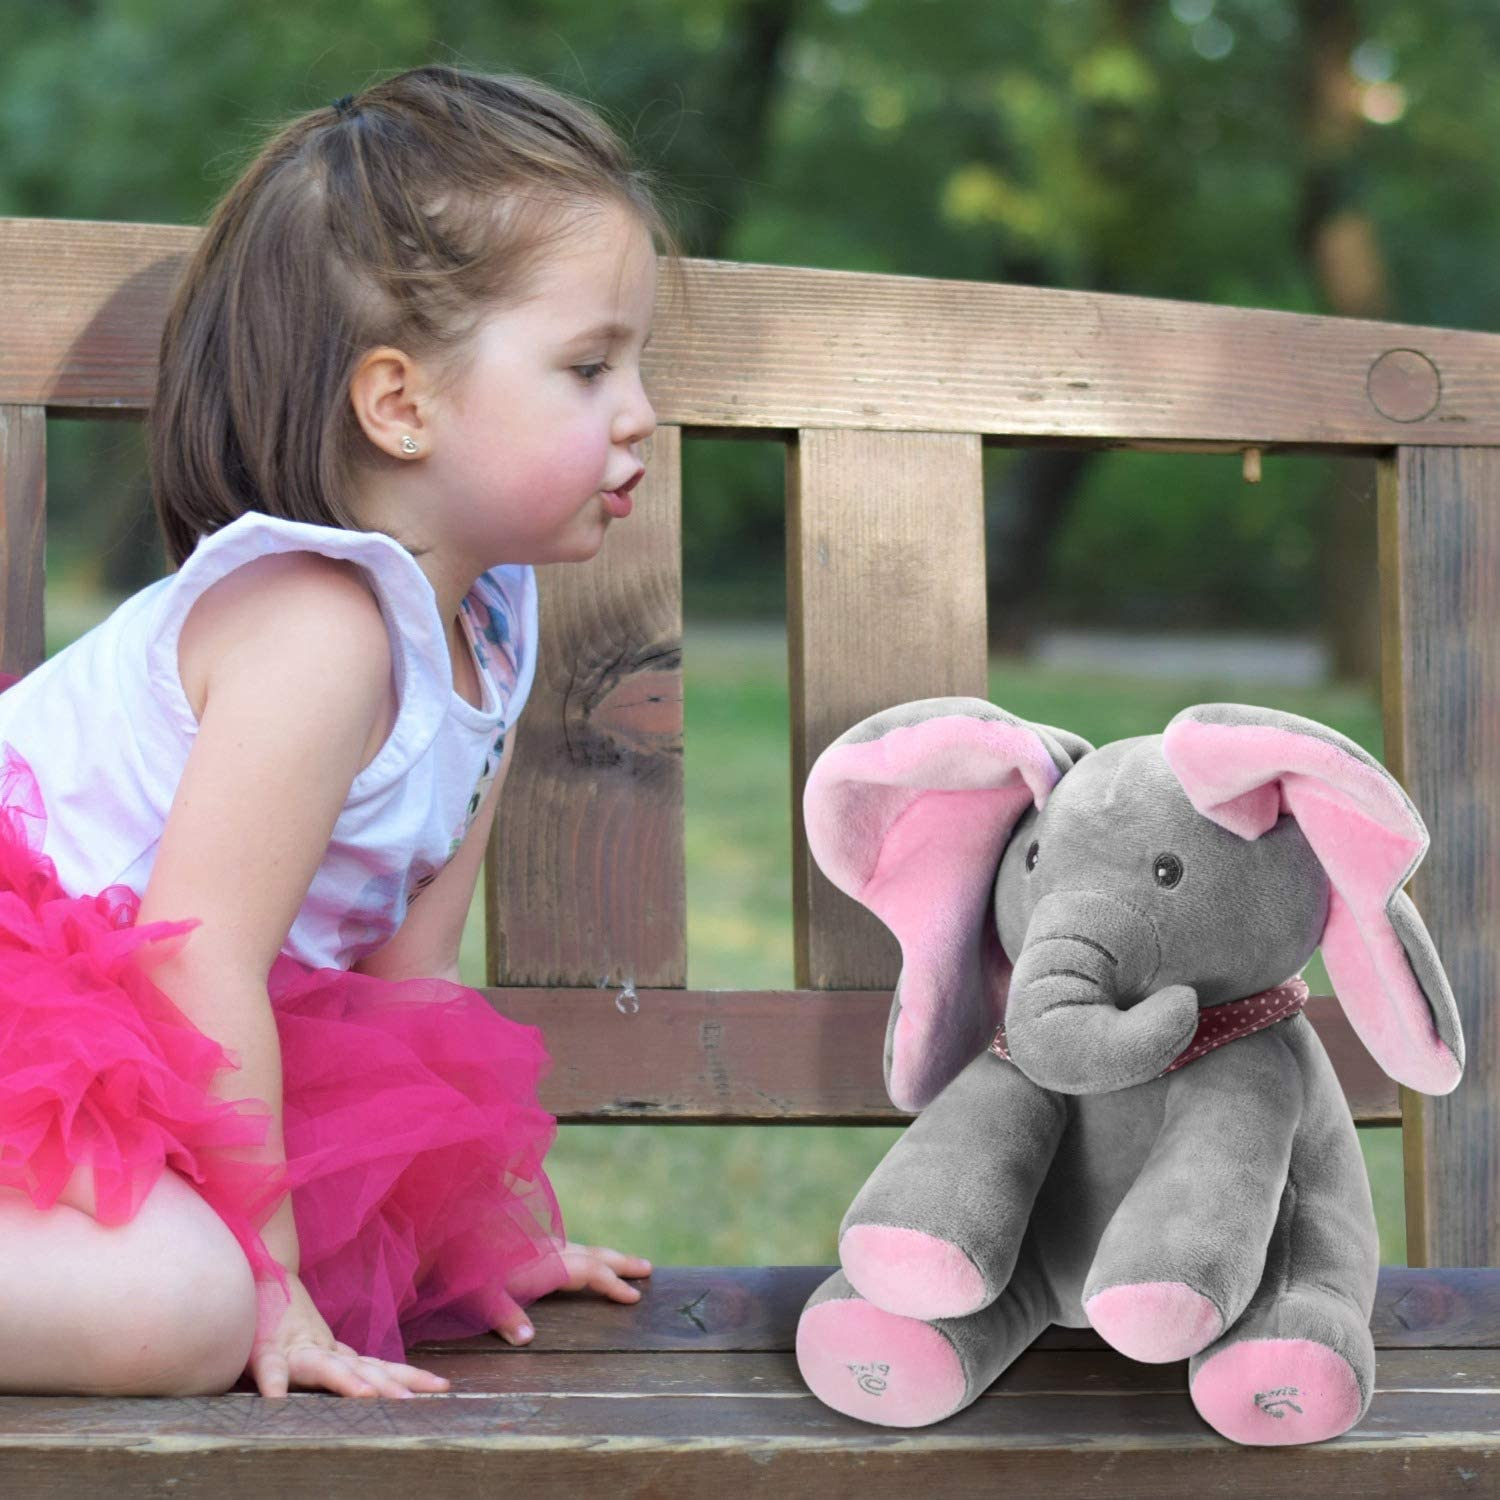 Moclever 12Inch Stuffed Plush Elephant Doll Peek-a-Boo Elephant Animated Talking Singing Cute Elephant Baby Doll Toy for Toddlers Kids Boys Girls Gift Pink